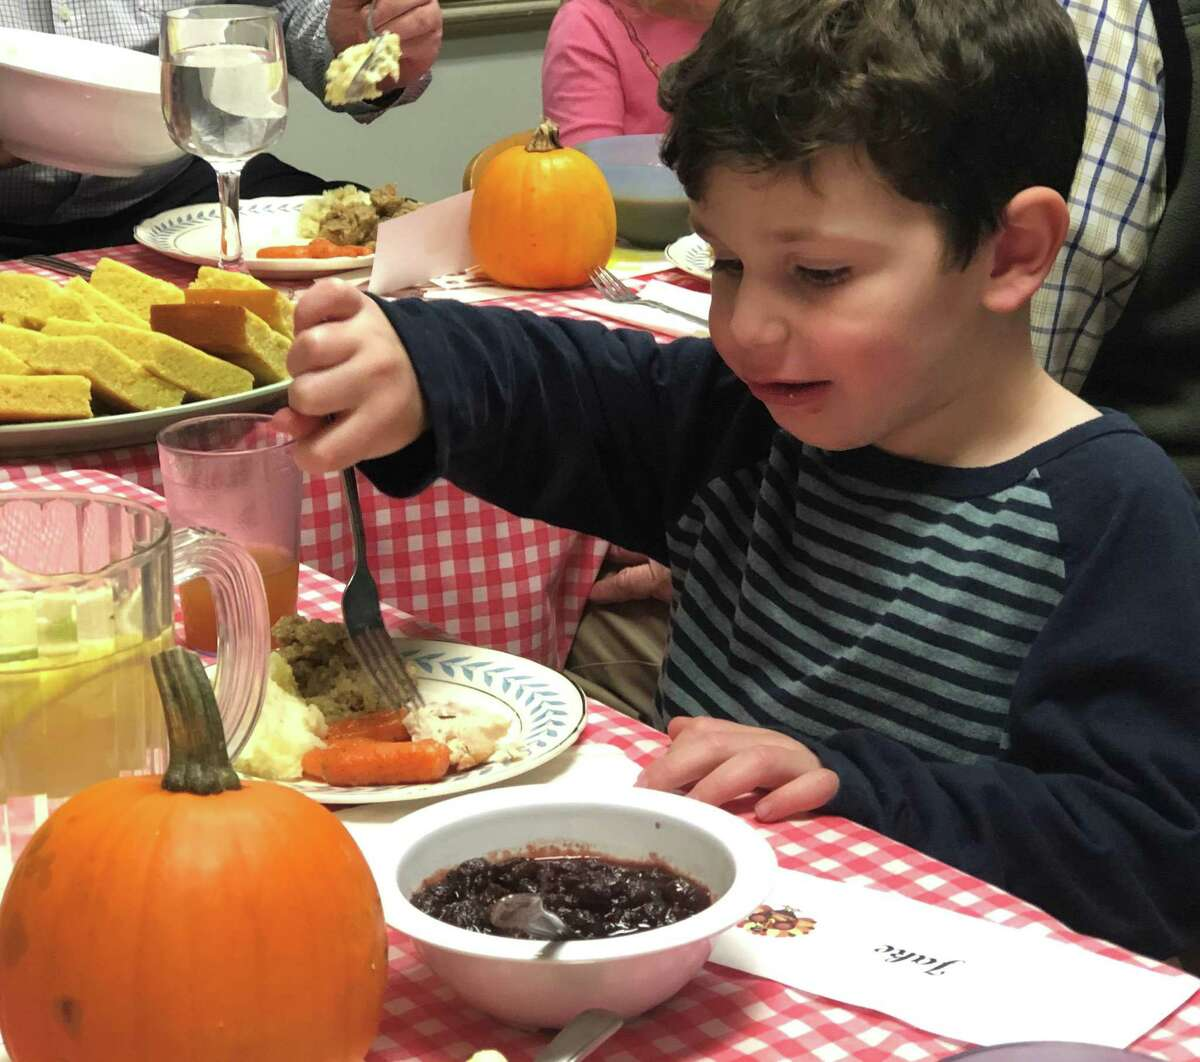 Jake Hangac, 4, digs into his Thanksgiving meal during the festivities.